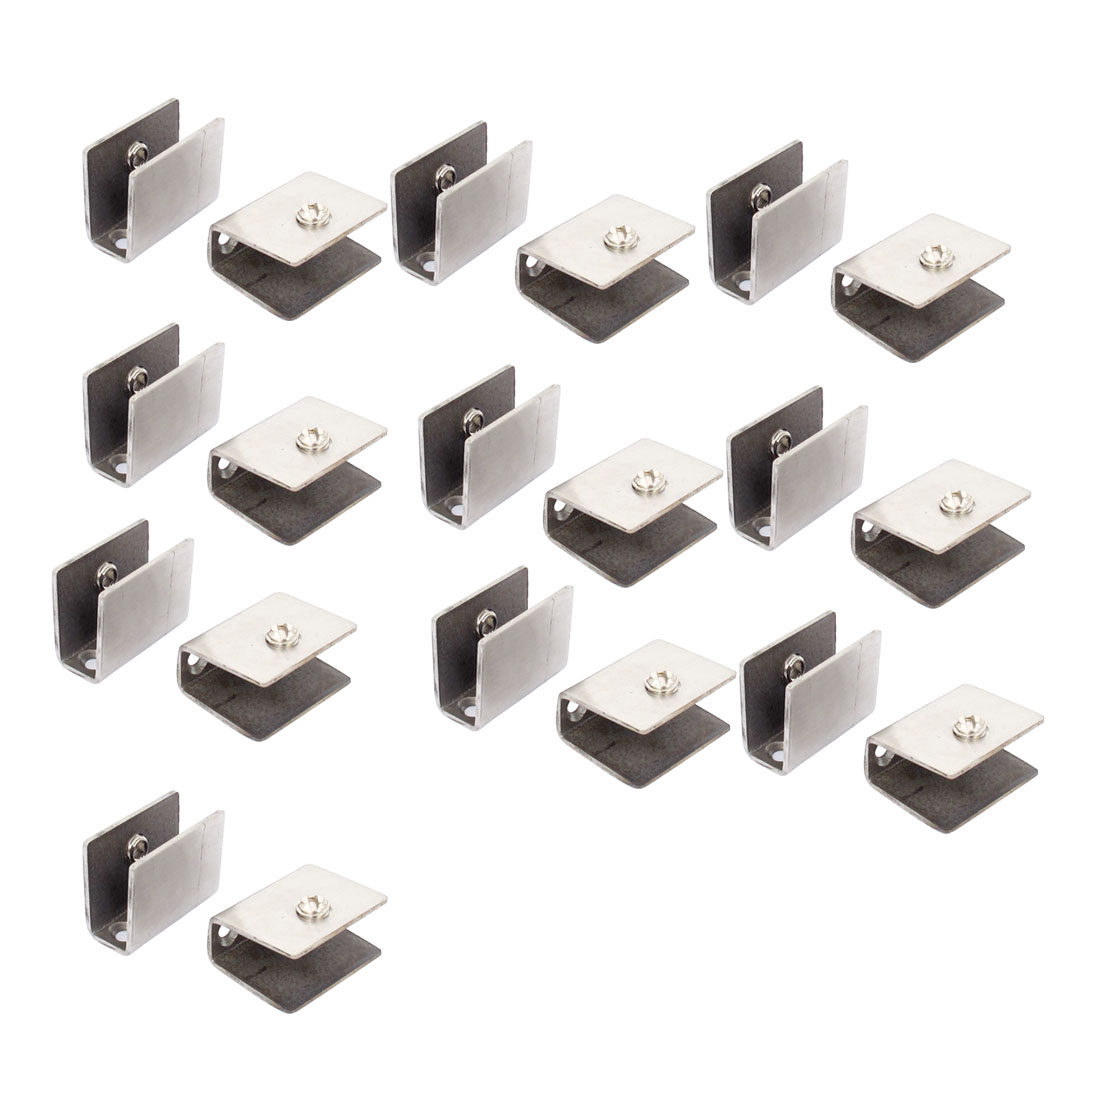 10mm-12mm Thickness Adjustable Rectangle Style Glass Clip Clamp 20pcs